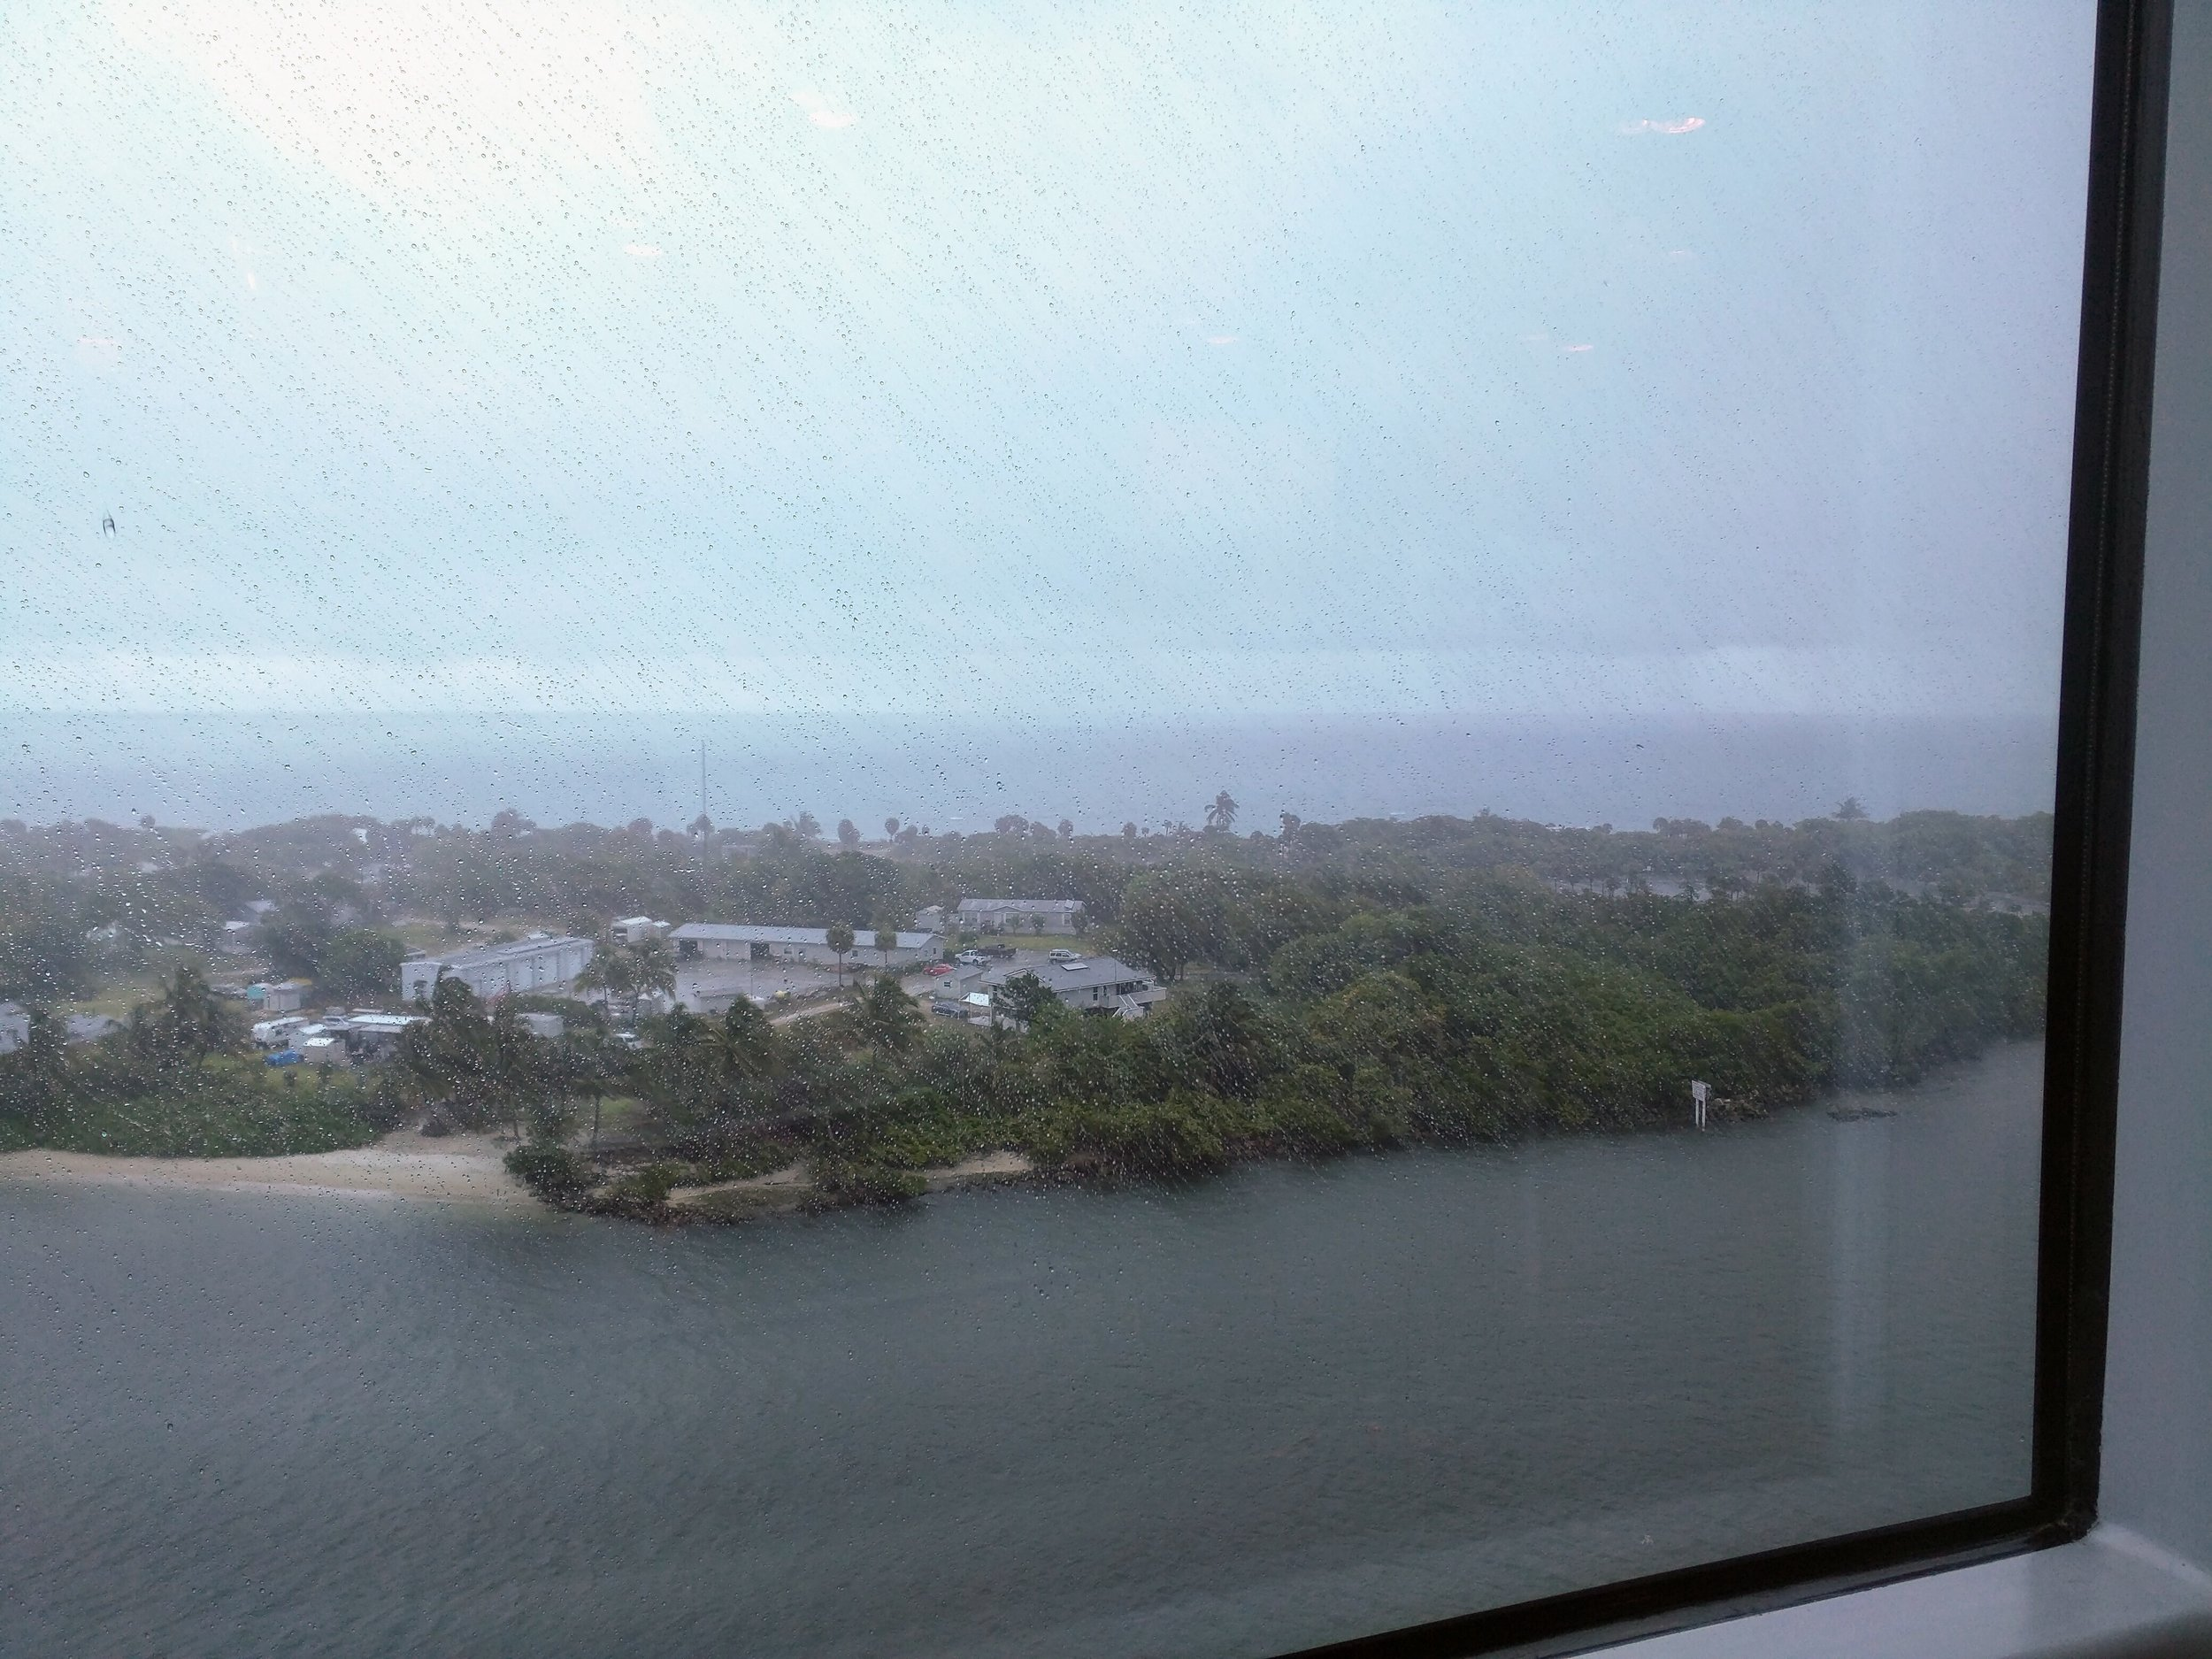 Rain in Fort Lauderdale